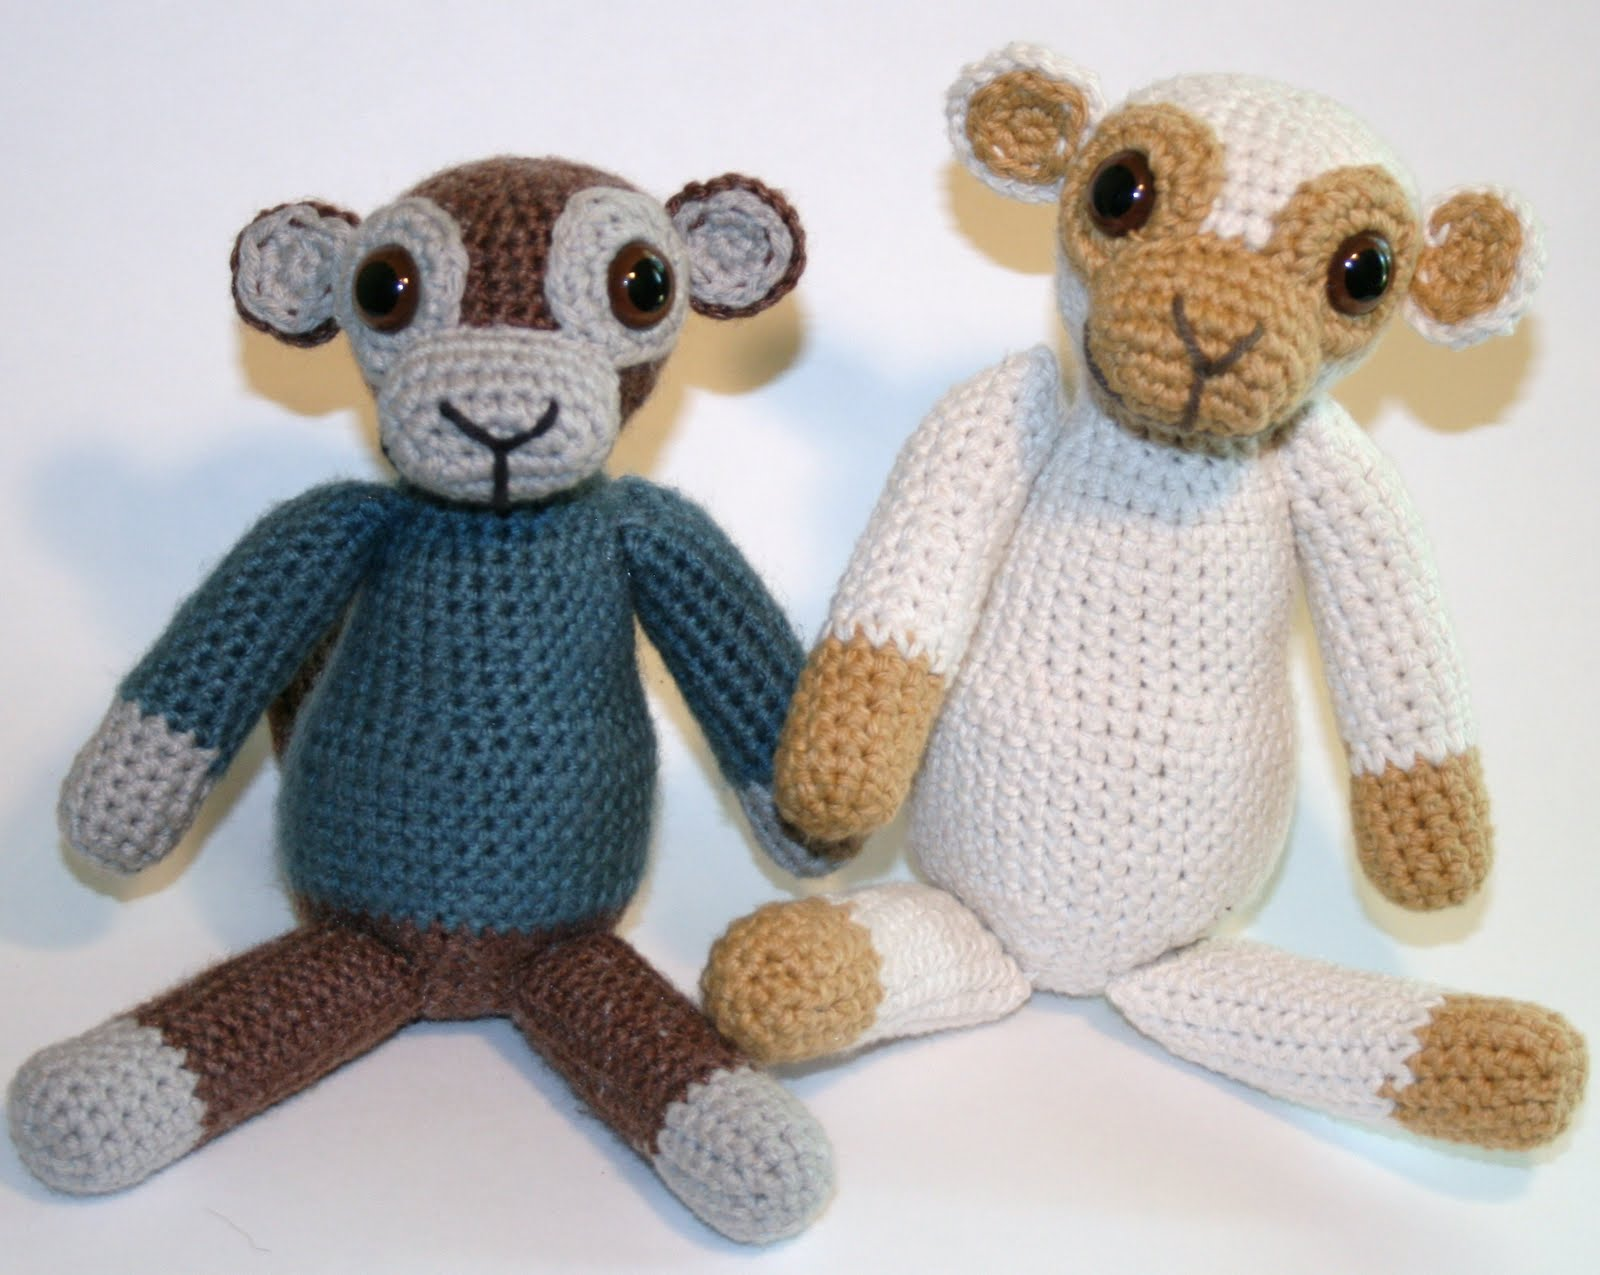 Amigurumi Monkey Patterns : Crochet pattern amigurumi pattern amigurumi monkey pattern